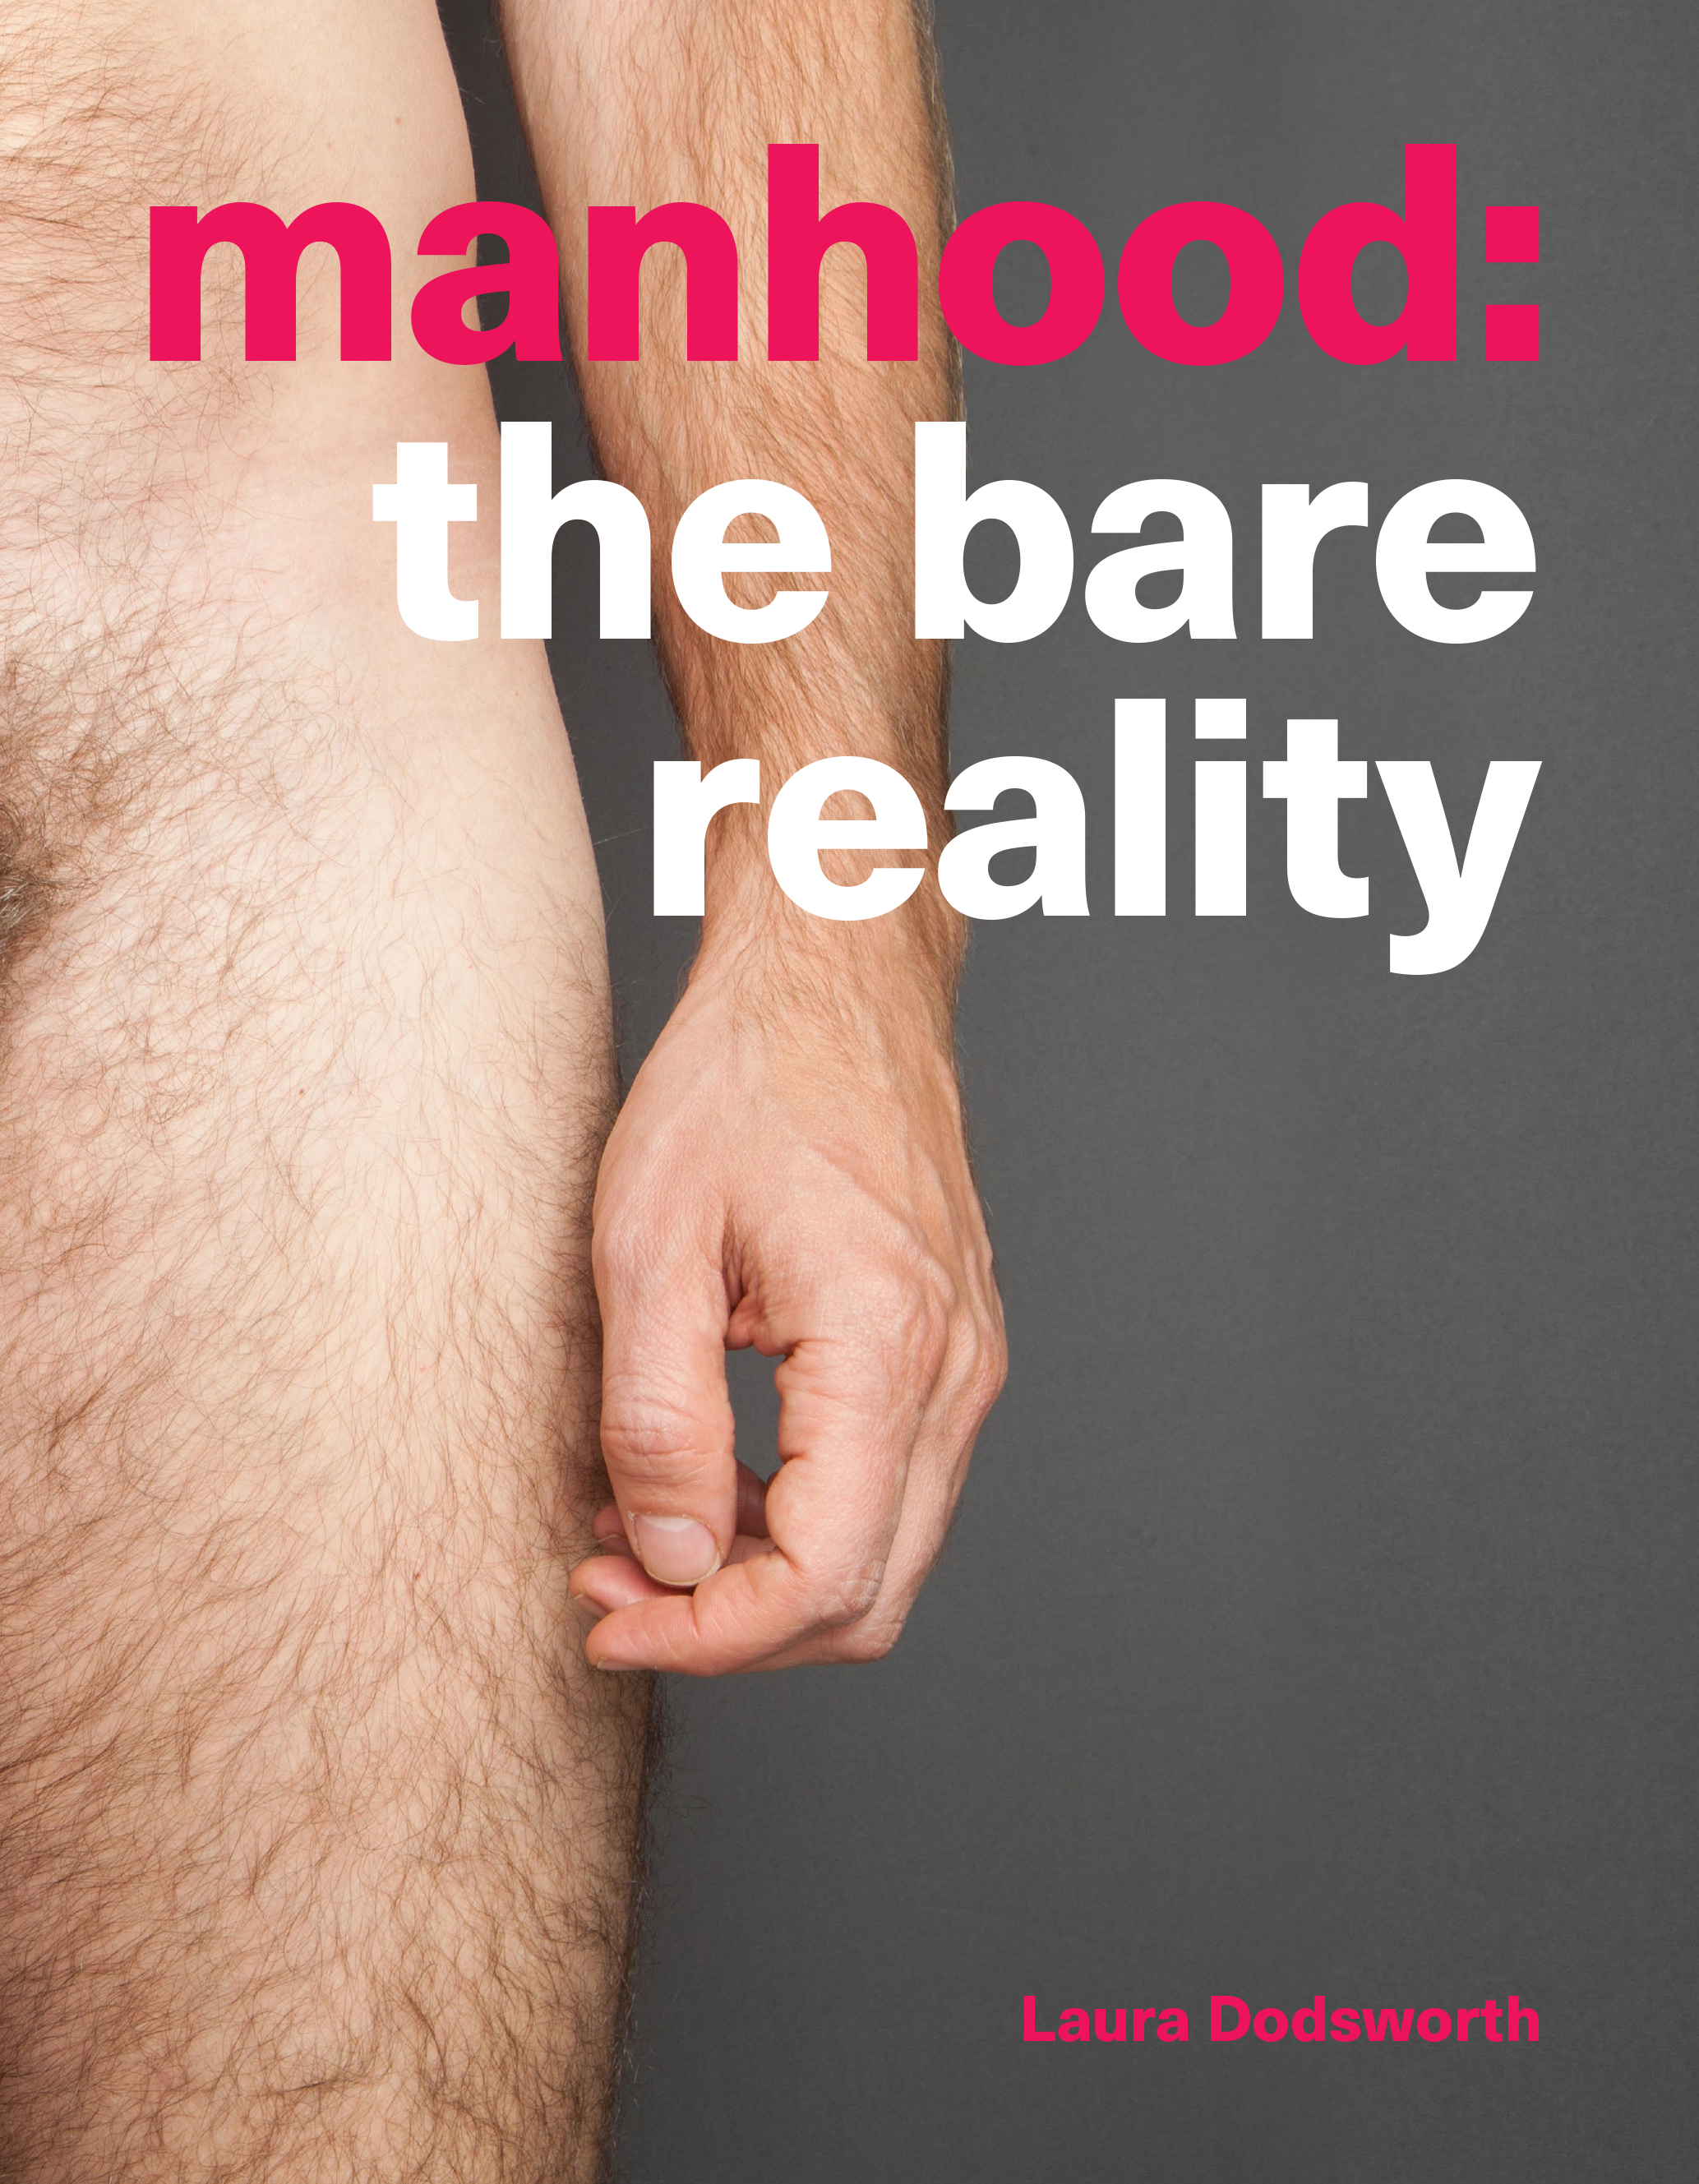 100 men bare all - 100 men bare all in a collection of photographs and interviews about manhood and 'manhood'. Read more